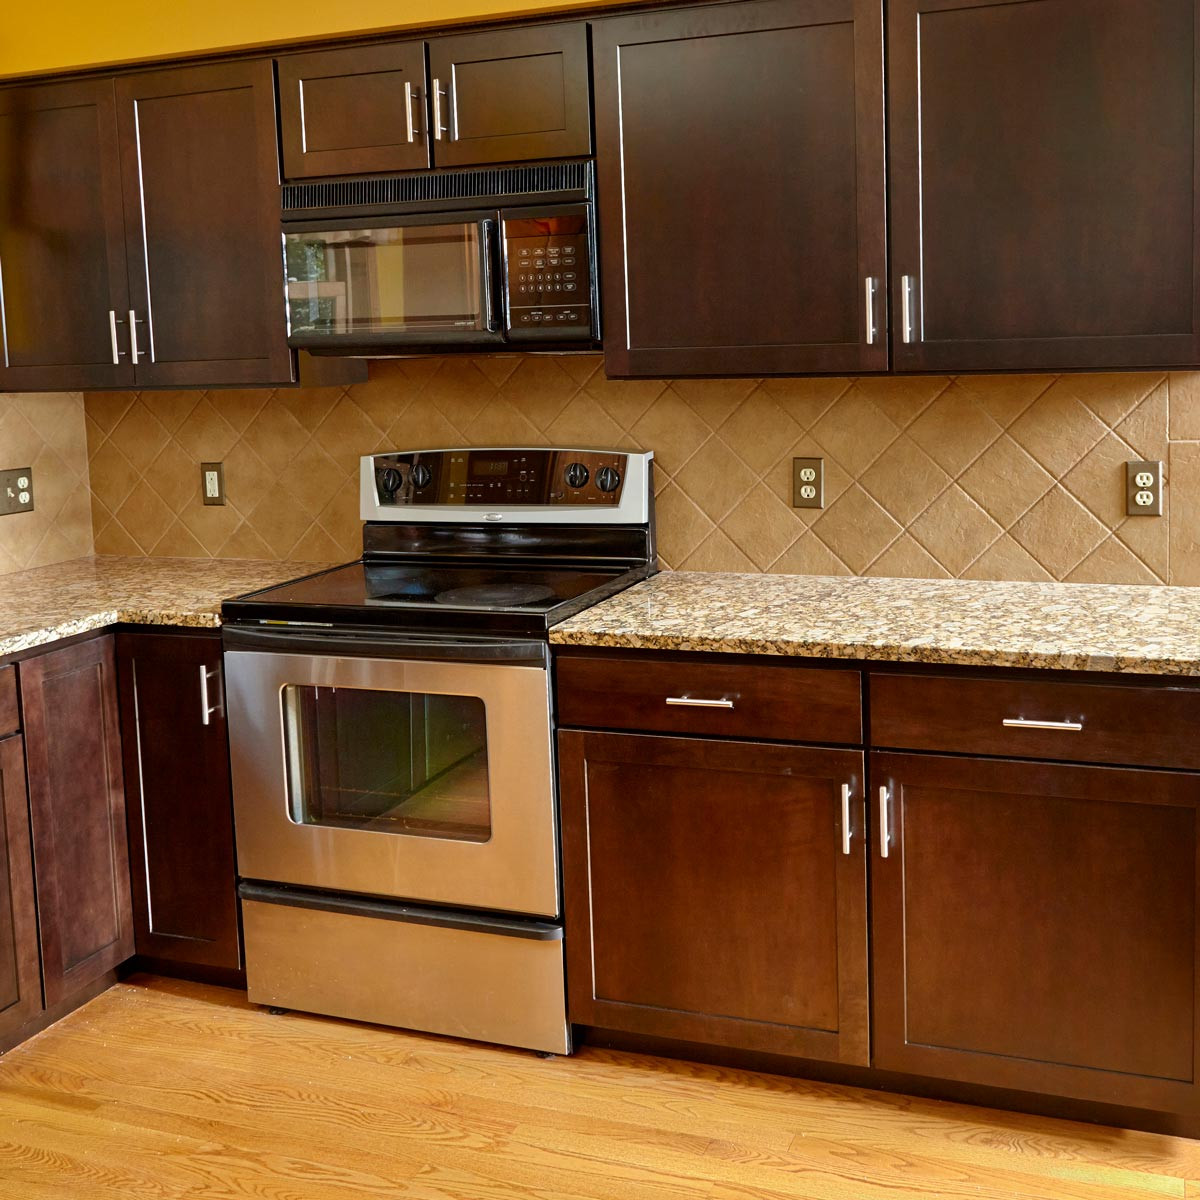 Best ideas about Refinishing Cabinets DIY . Save or Pin Cabinet Refacing Now.